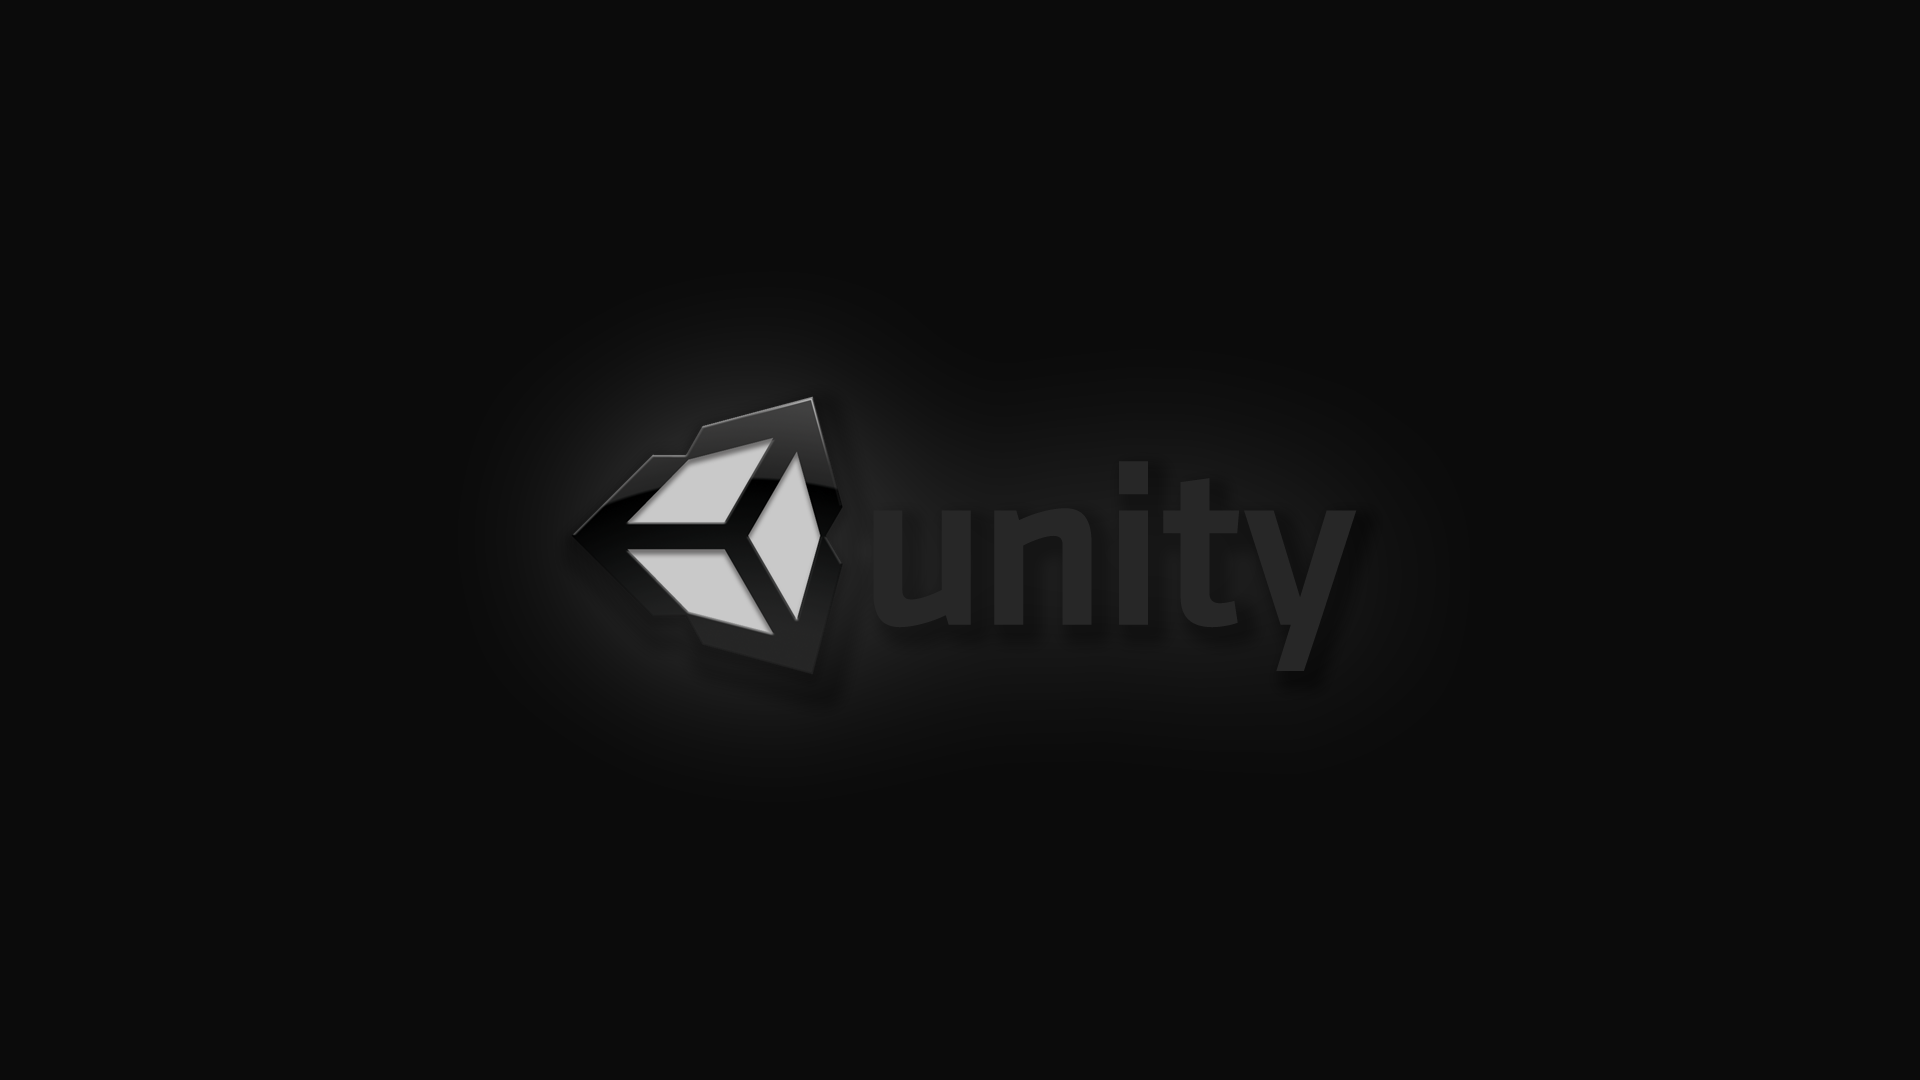 Unity 3D Wallpaper - WallpaperSafari